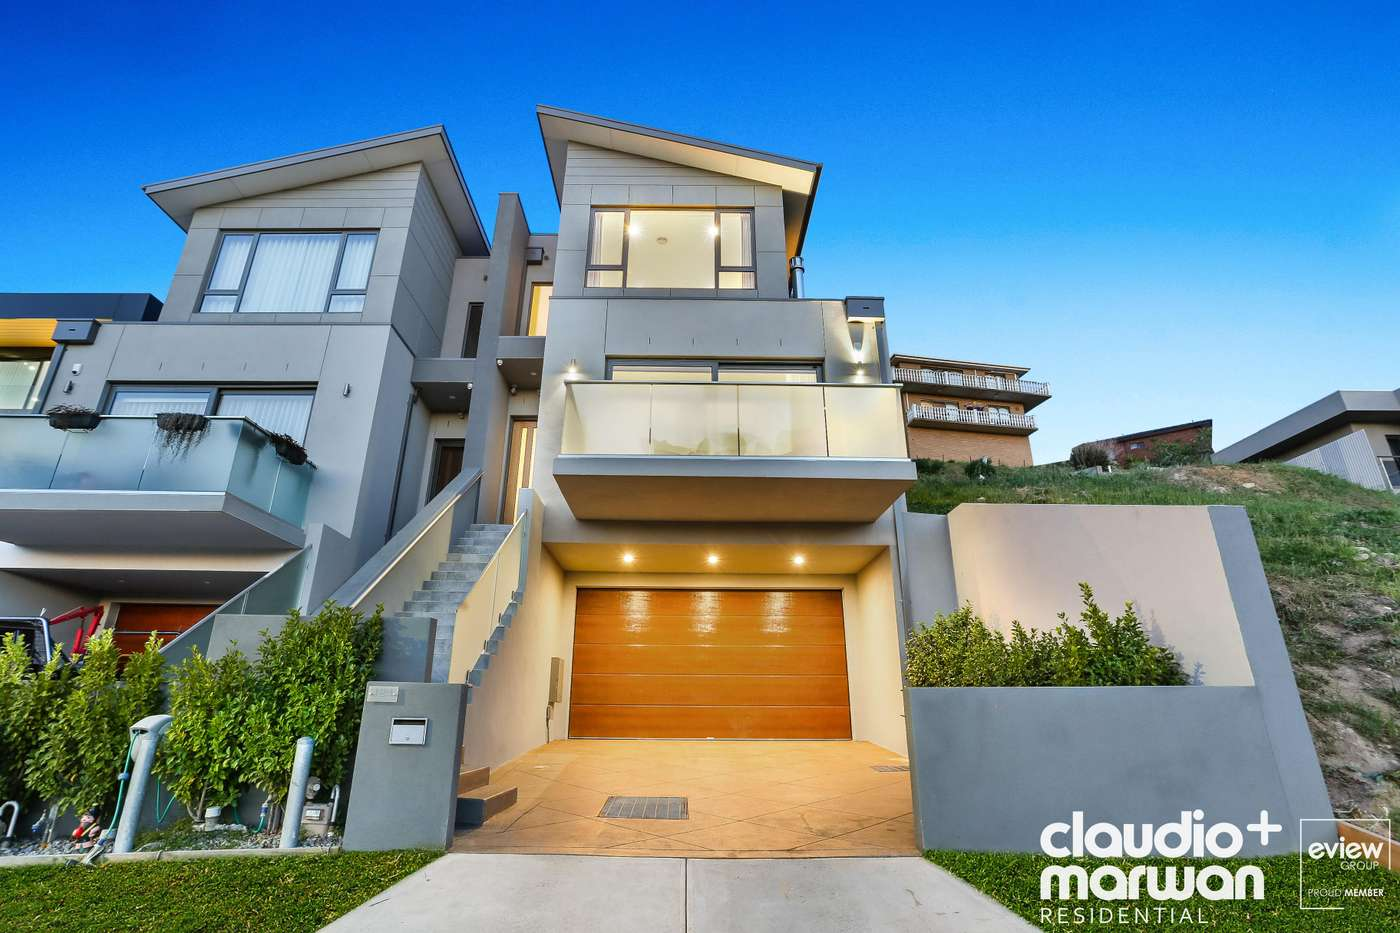 Main view of Homely house listing, 124 Devereaux Street, Oak Park, VIC 3046